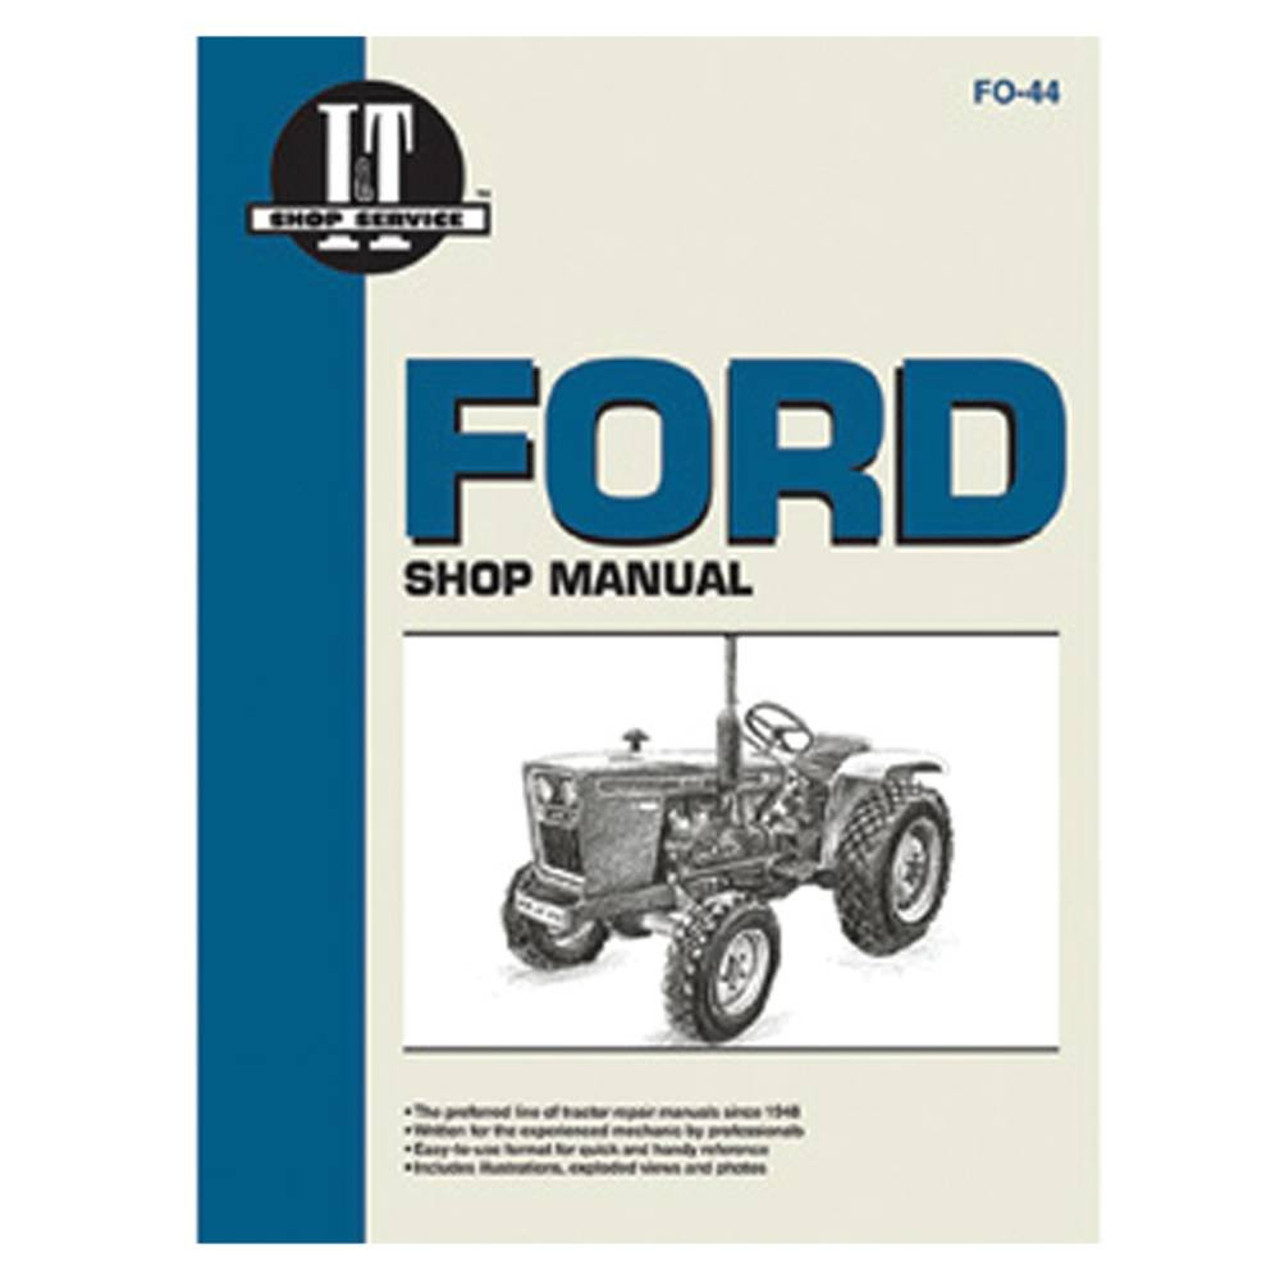 [DIAGRAM_3NM]  B59F Ford 1210 Tractor Wiring Diagram | Wiring Resources | Vintage New Holland Lawn Tractor Wiring Diagram |  | Wiring Resources